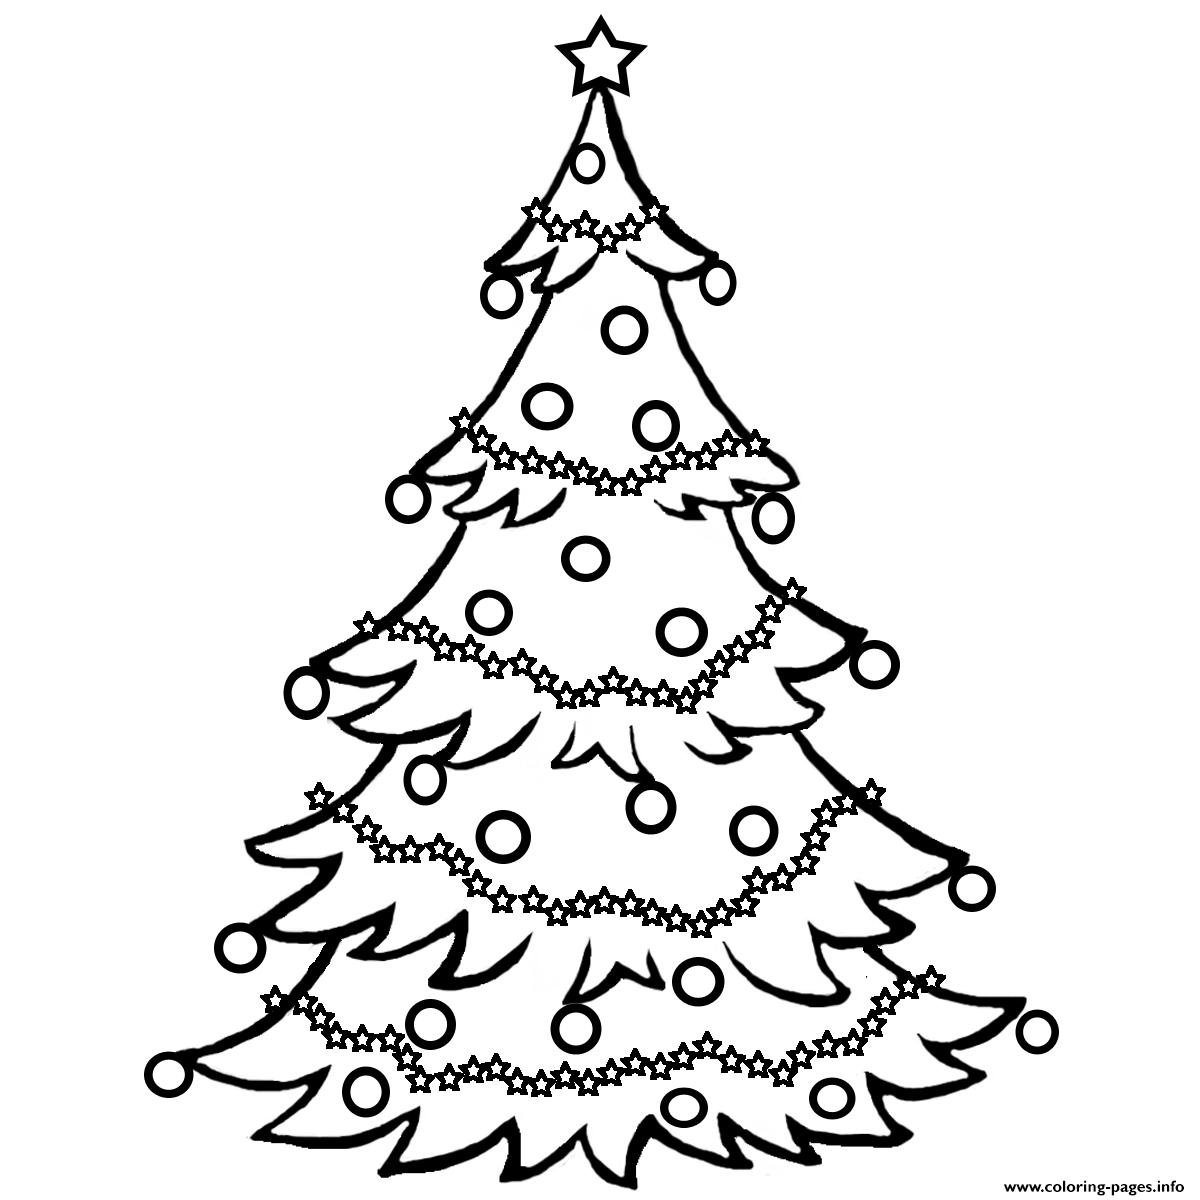 Christmas Tree Free Coloring Pages Printable - Free Printable Christmas Tree Images